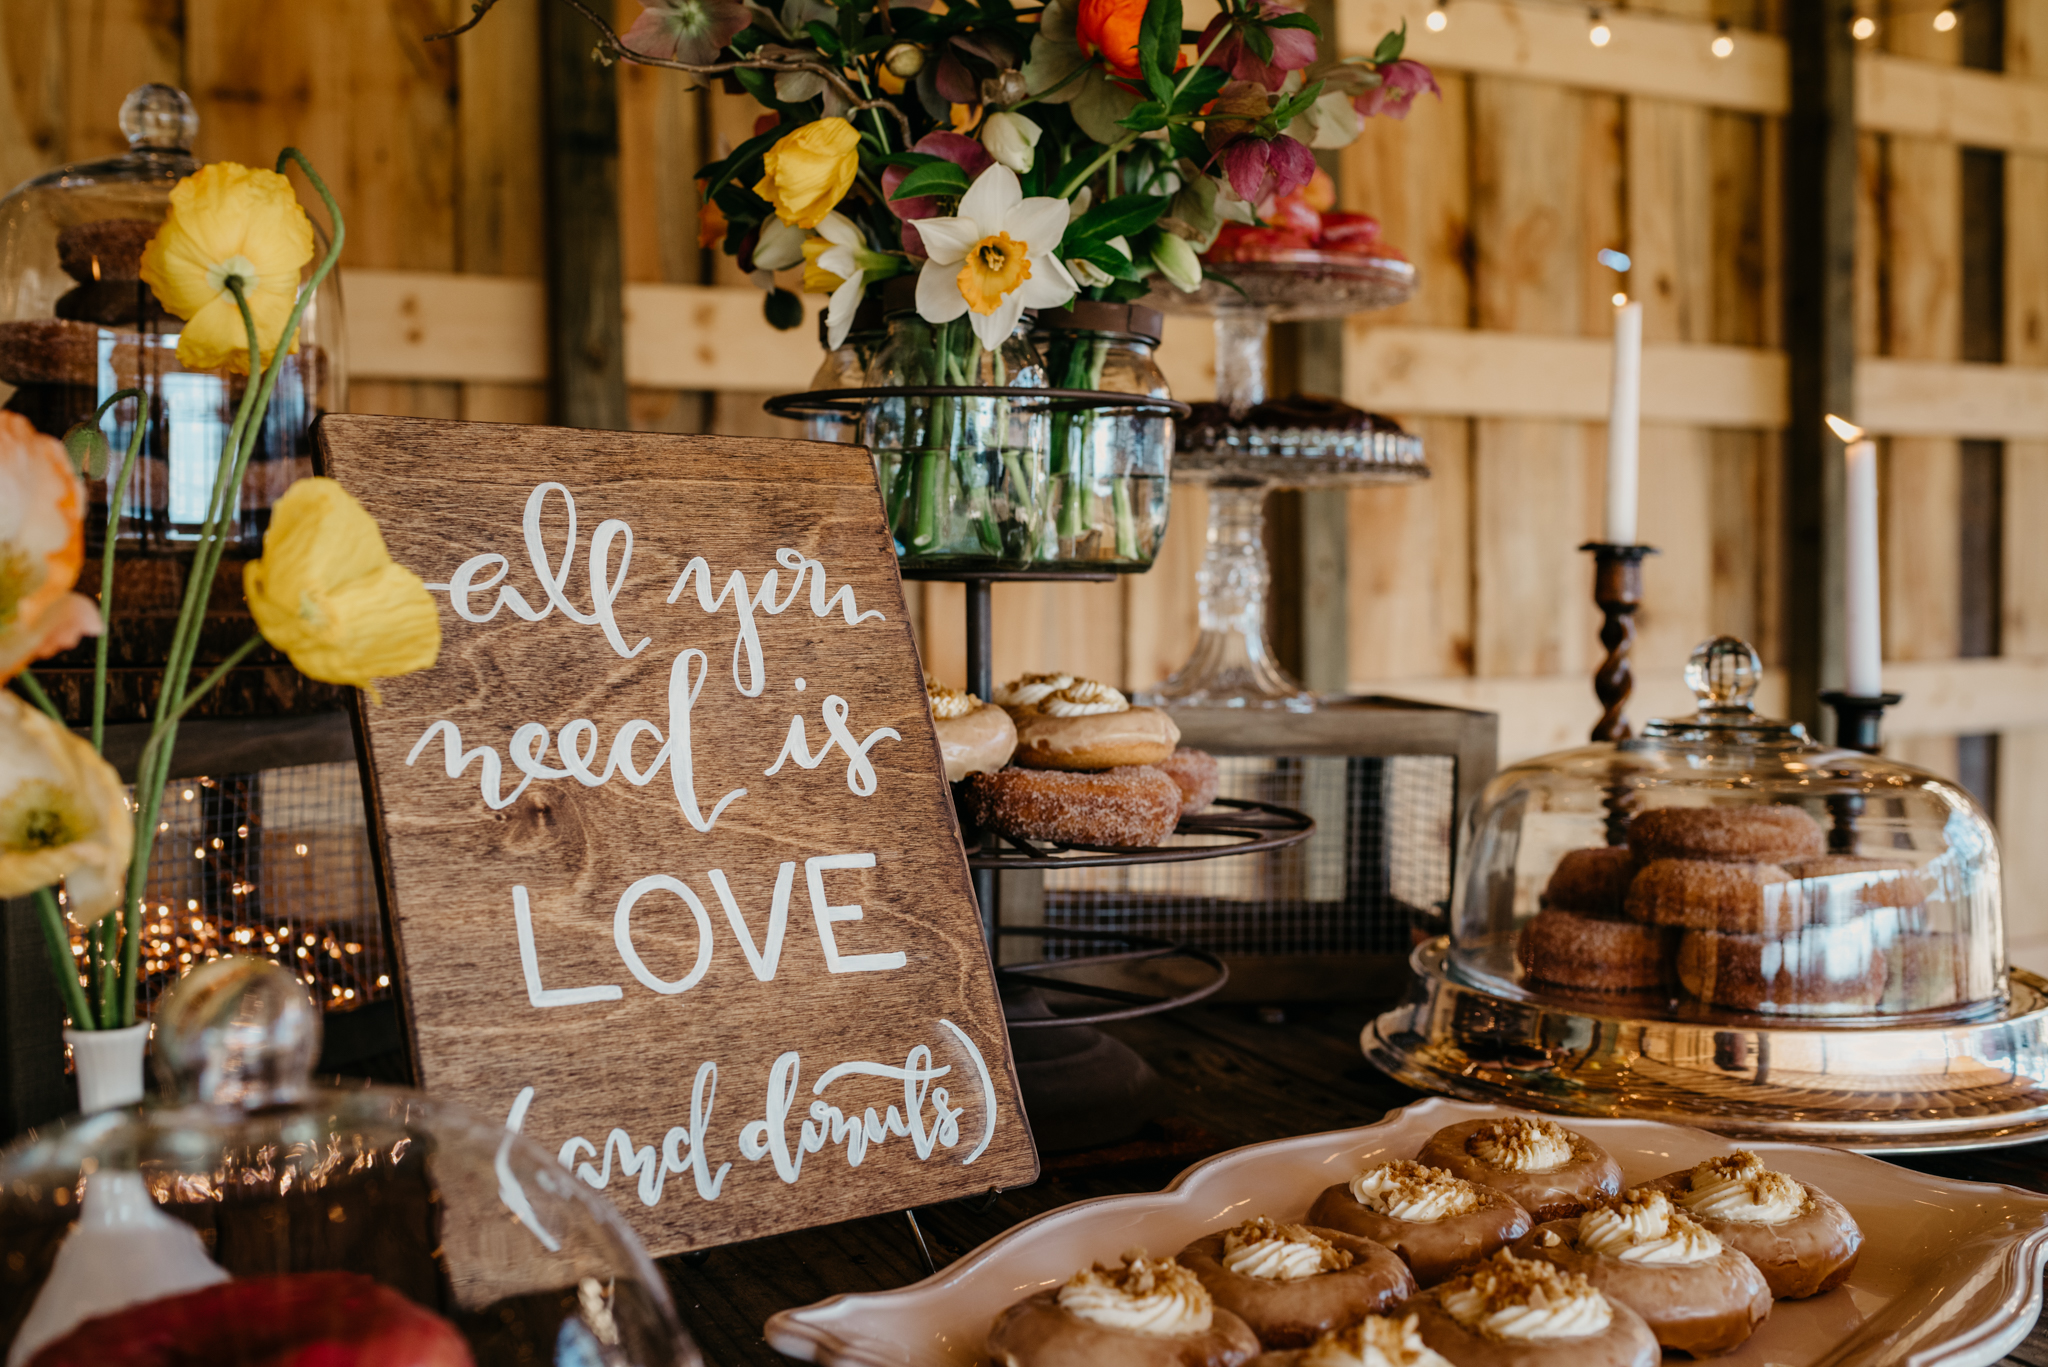 Treat Signs - These donut signs are super popular. In fact, last year we sold more of these than any other wooden sign design. And we can see why. If you're serving up sweets on a buffet or as your event favor, a wooden sign like this one will make the display even sweeter. After the wedding, just hang your donut sign on your kitchen wall. Your wedding may be over, but that doesn't make this sign any less true!